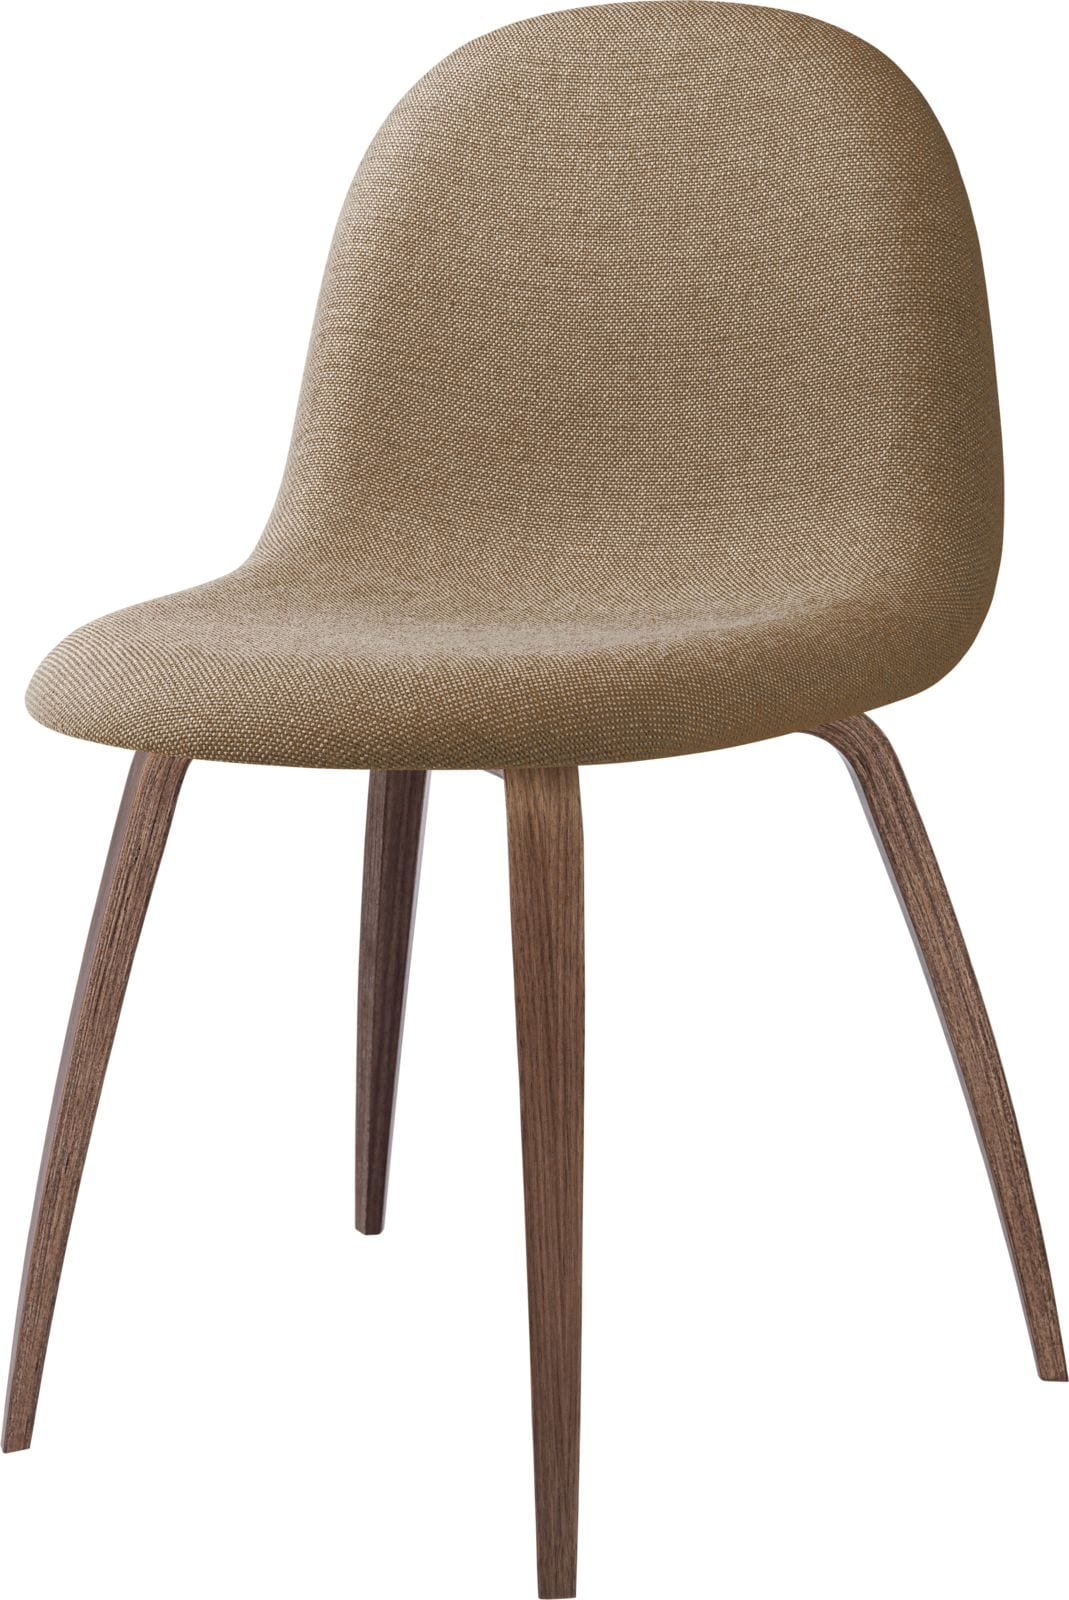 3D Dining Chair- Fully Upholstered, Wood Base